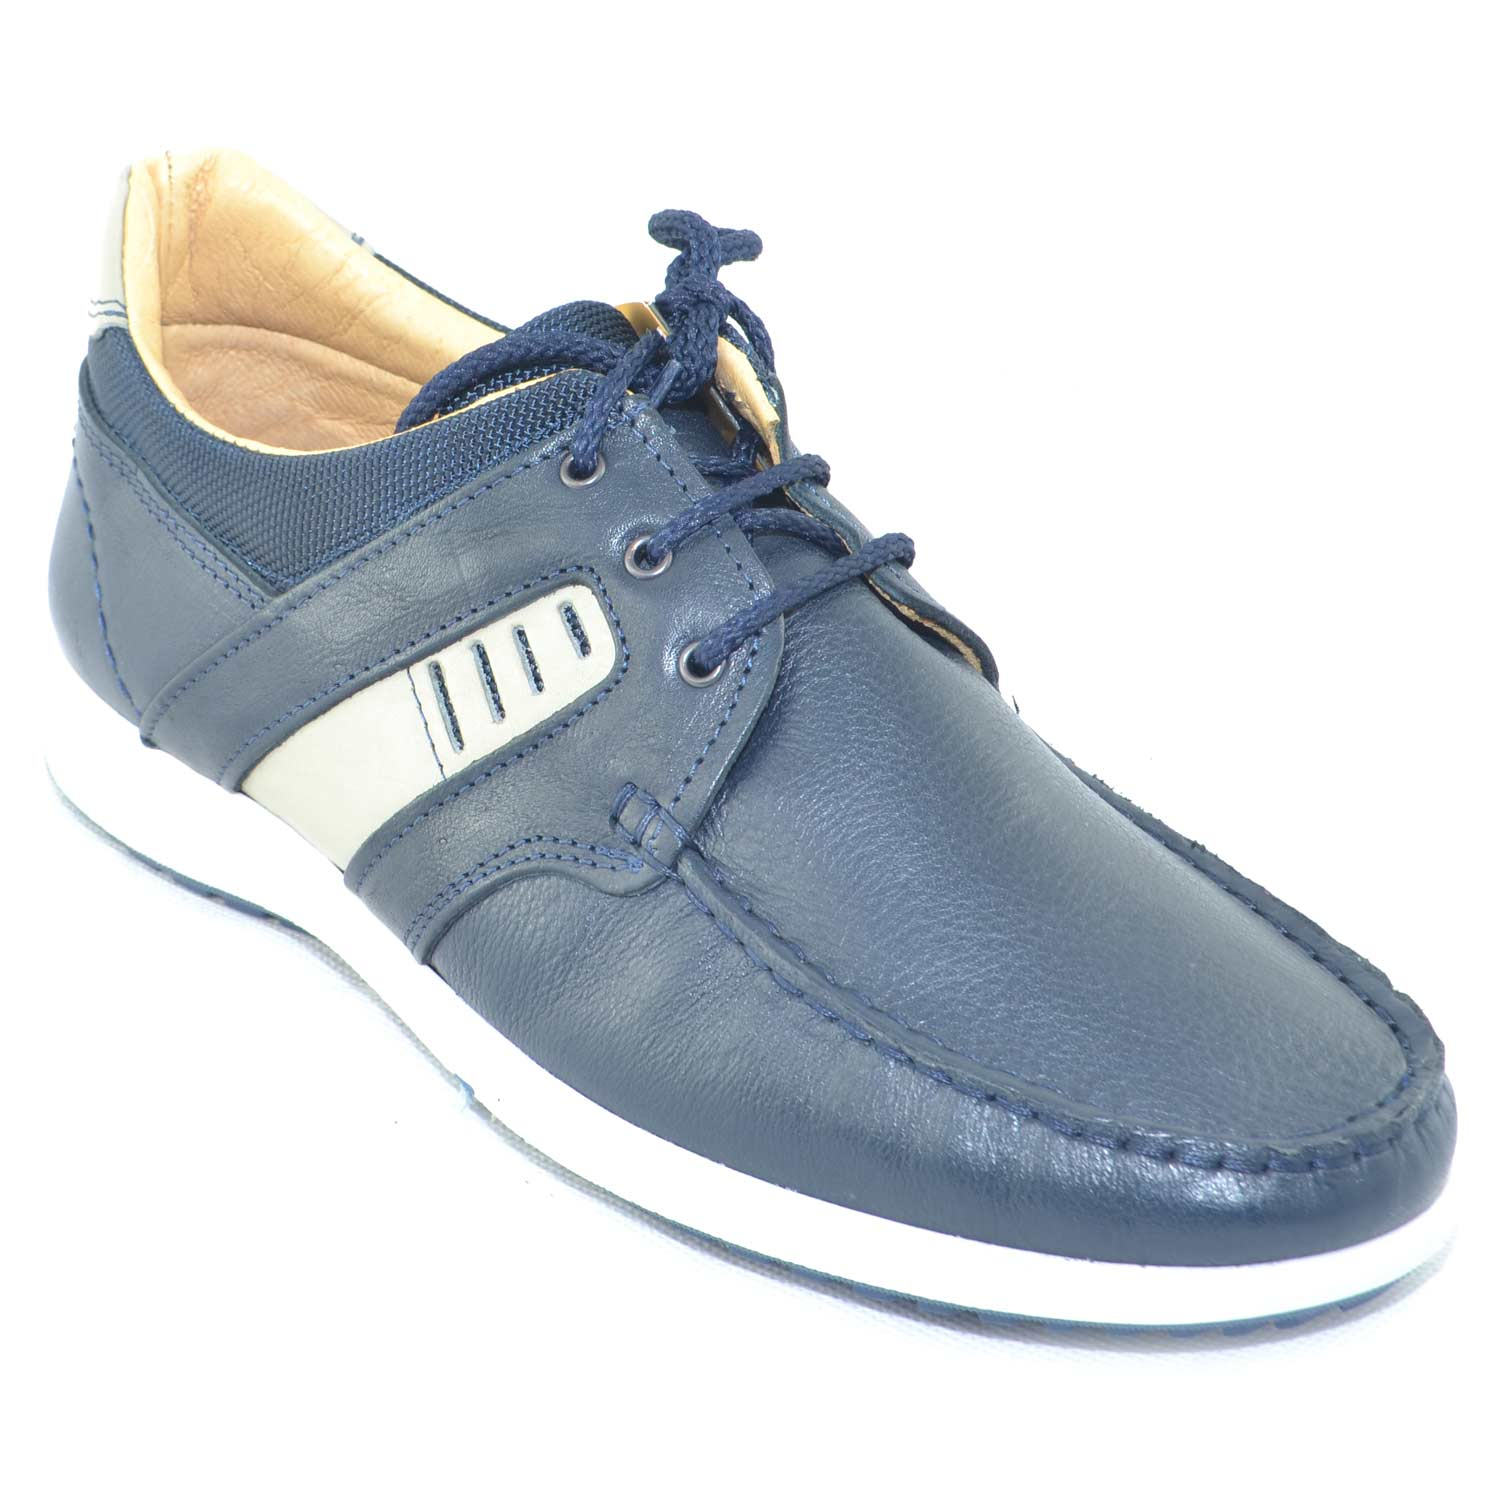 Scarpe uomo interland man casual made in italy scarpa interland comfort in vera pelle di nabuk blu fondo antiscivolo.